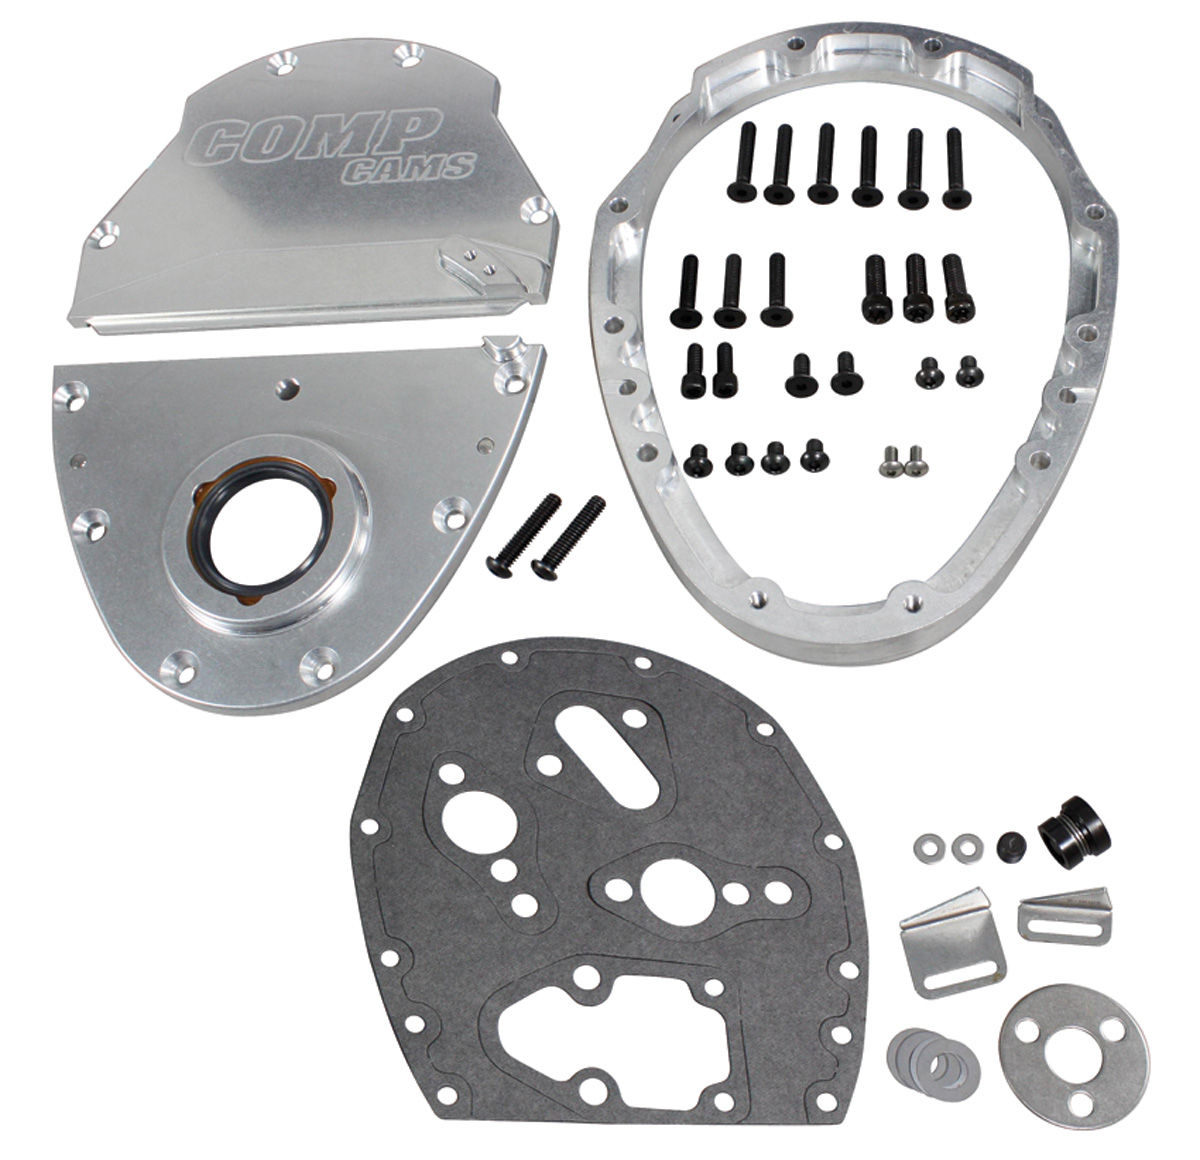 Photo of Timing Cover, Three-Piece Aluminum Small Block